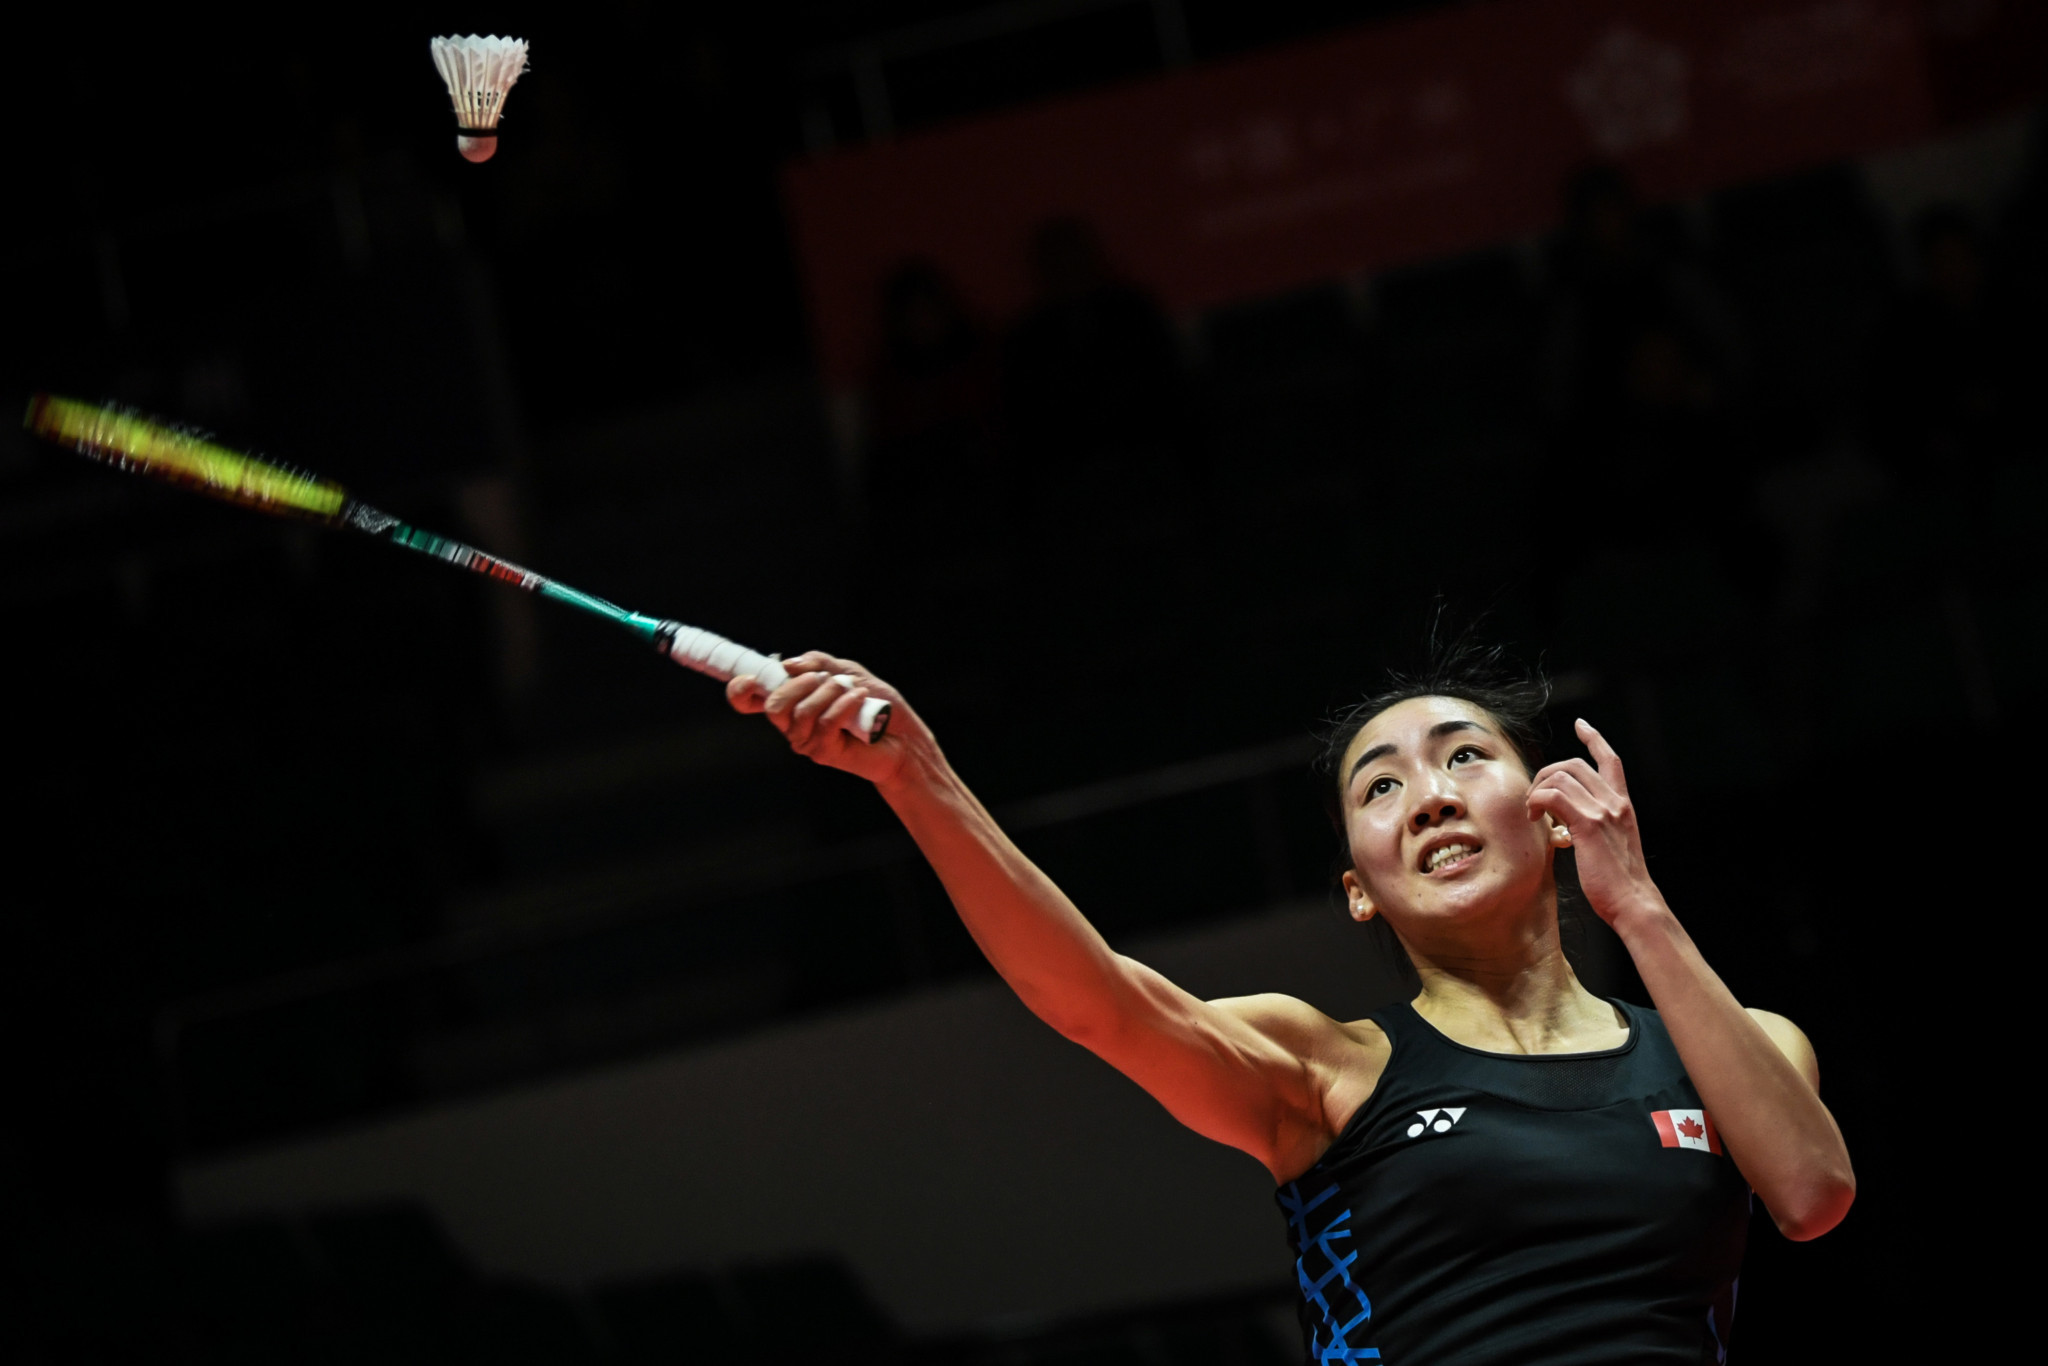 Li makes successful start to title defence at Pan American Badminton Championships